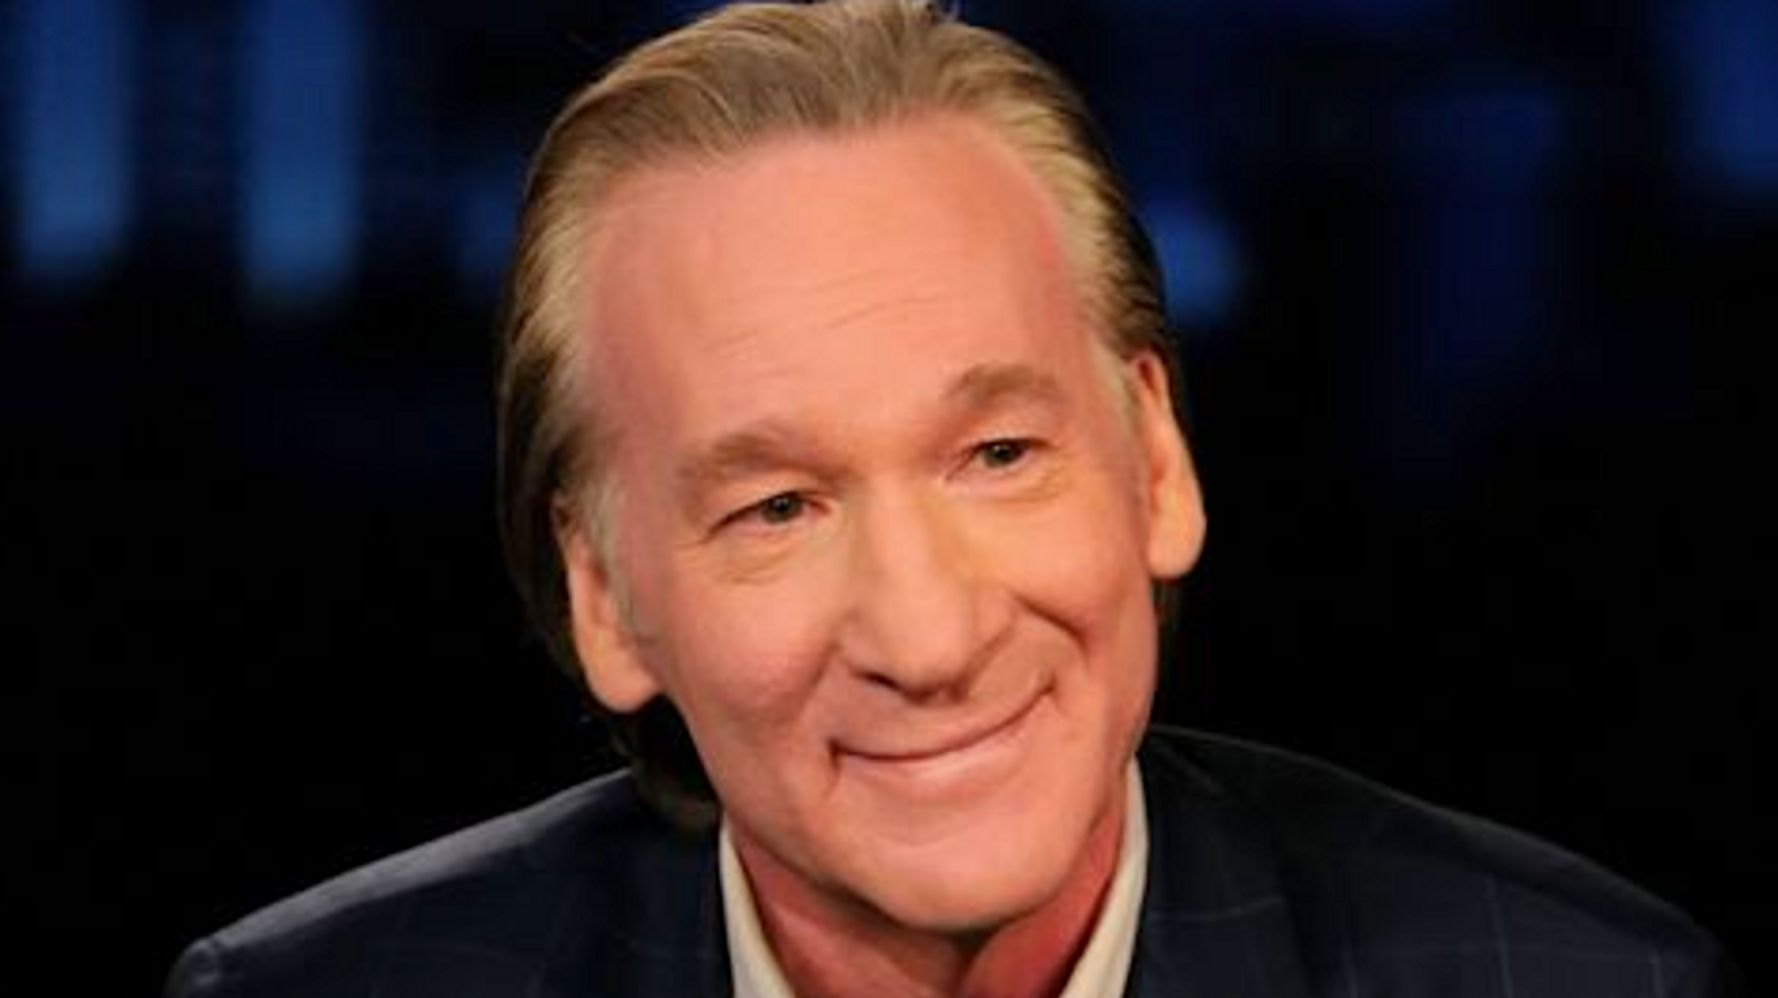 Bill Maher Tests Positive For COVID-19, 'Real Time' Taping Postponed